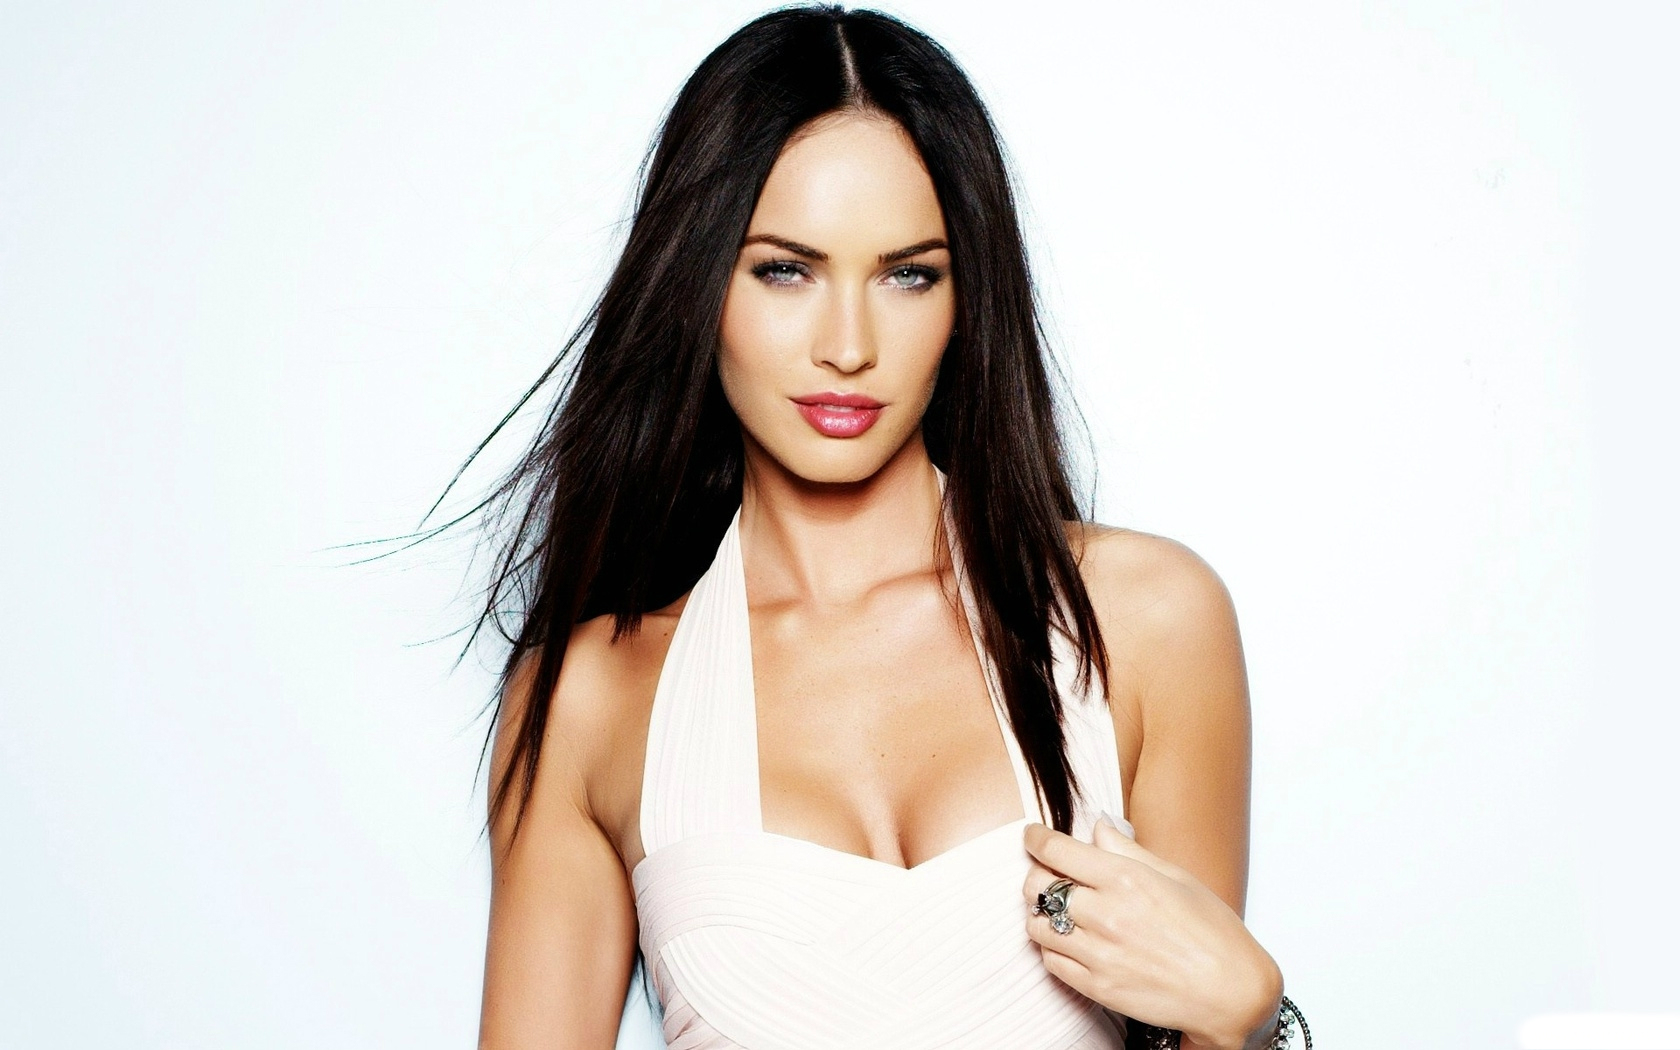 Online Wallpapers Shop Megan Fox Wallpapers: Megan Fox, Fondos De Pantalla De Megan Fox, Wallpapers HD